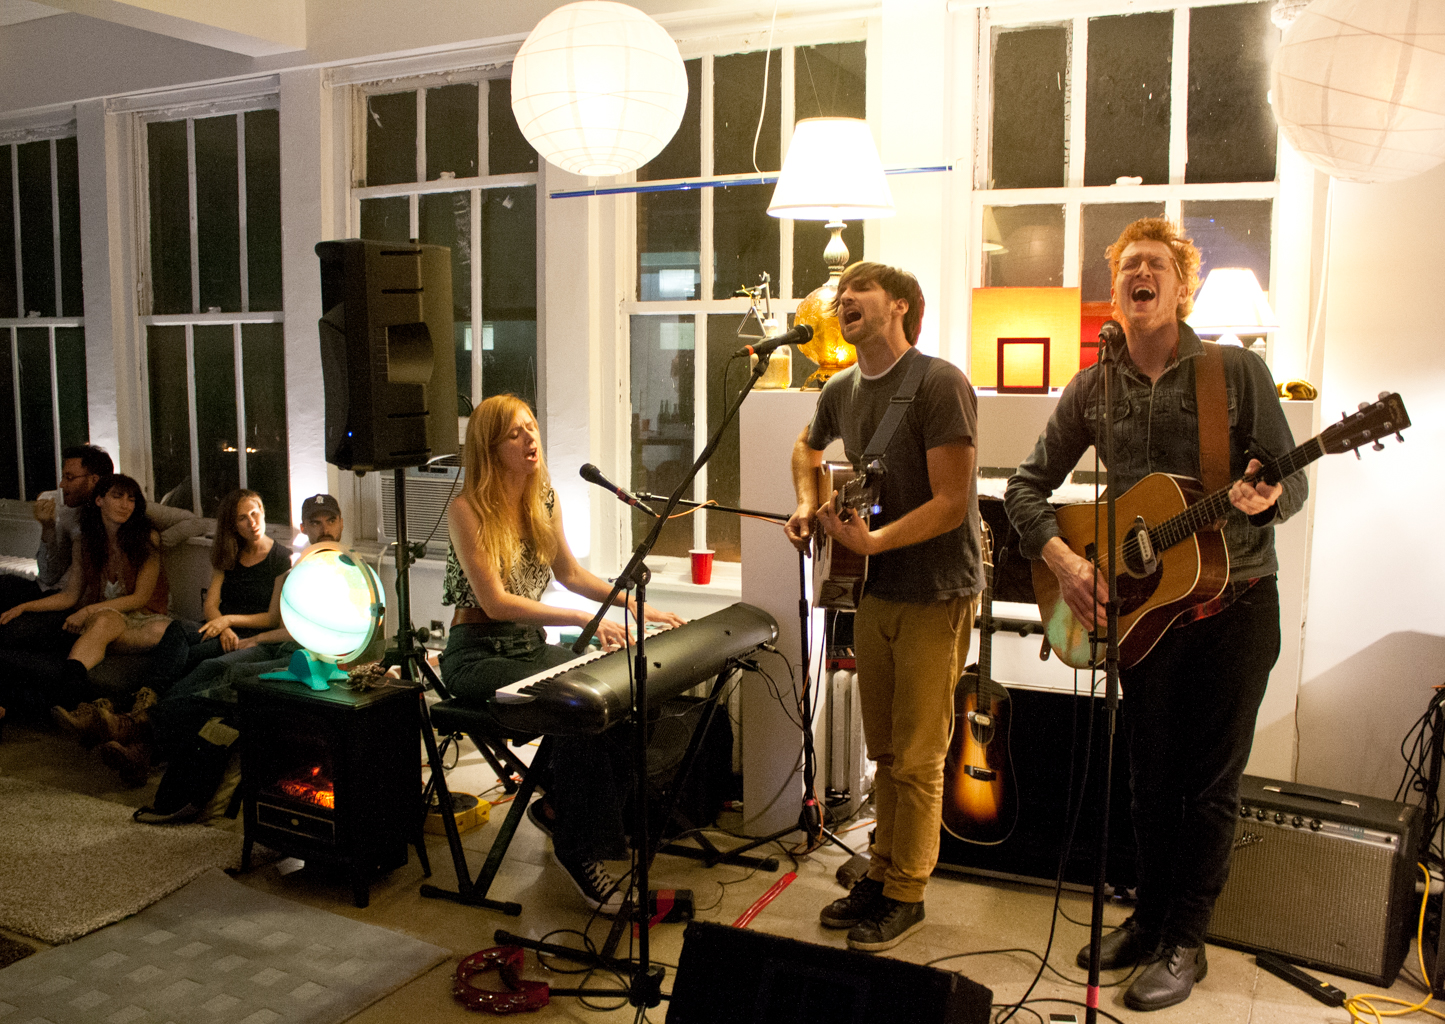 The Spring Standards, another local band I fell in love with, playing a living room show during CMJ 2013.